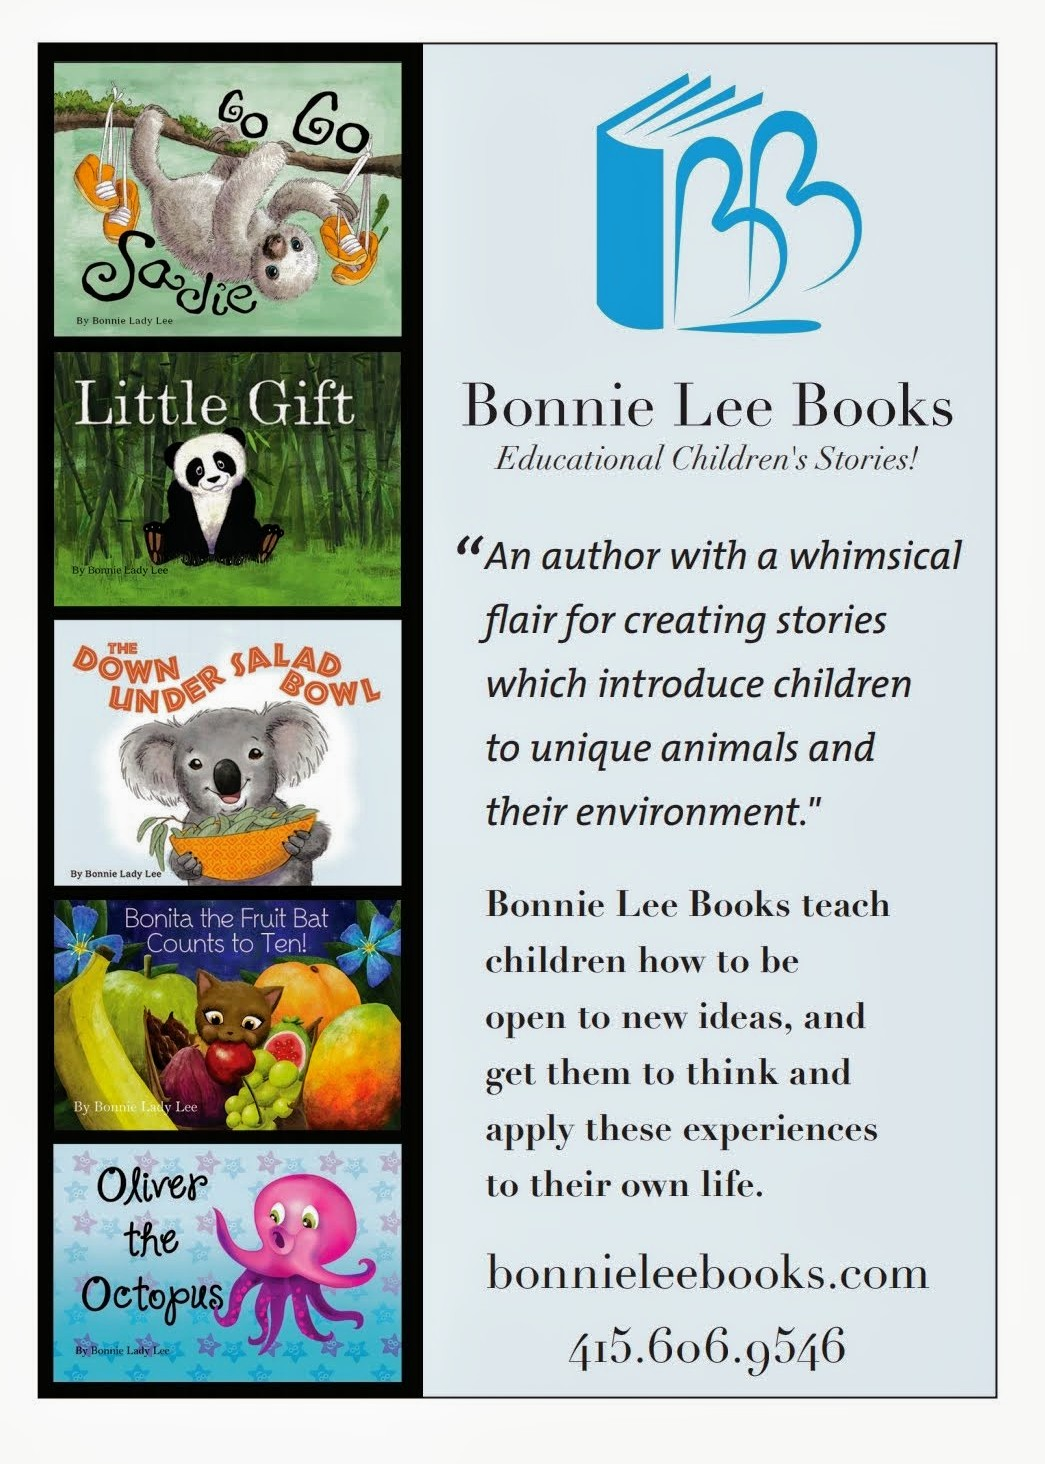 Bonnie Lee Books. Educational Children's Stories. An author with a whimsical flair for creating stories which introduce children to unique animals and their environments. Bonnie Lee Books teach children how to be open to new ideas, and get them to think and apply these experiences to their own life.